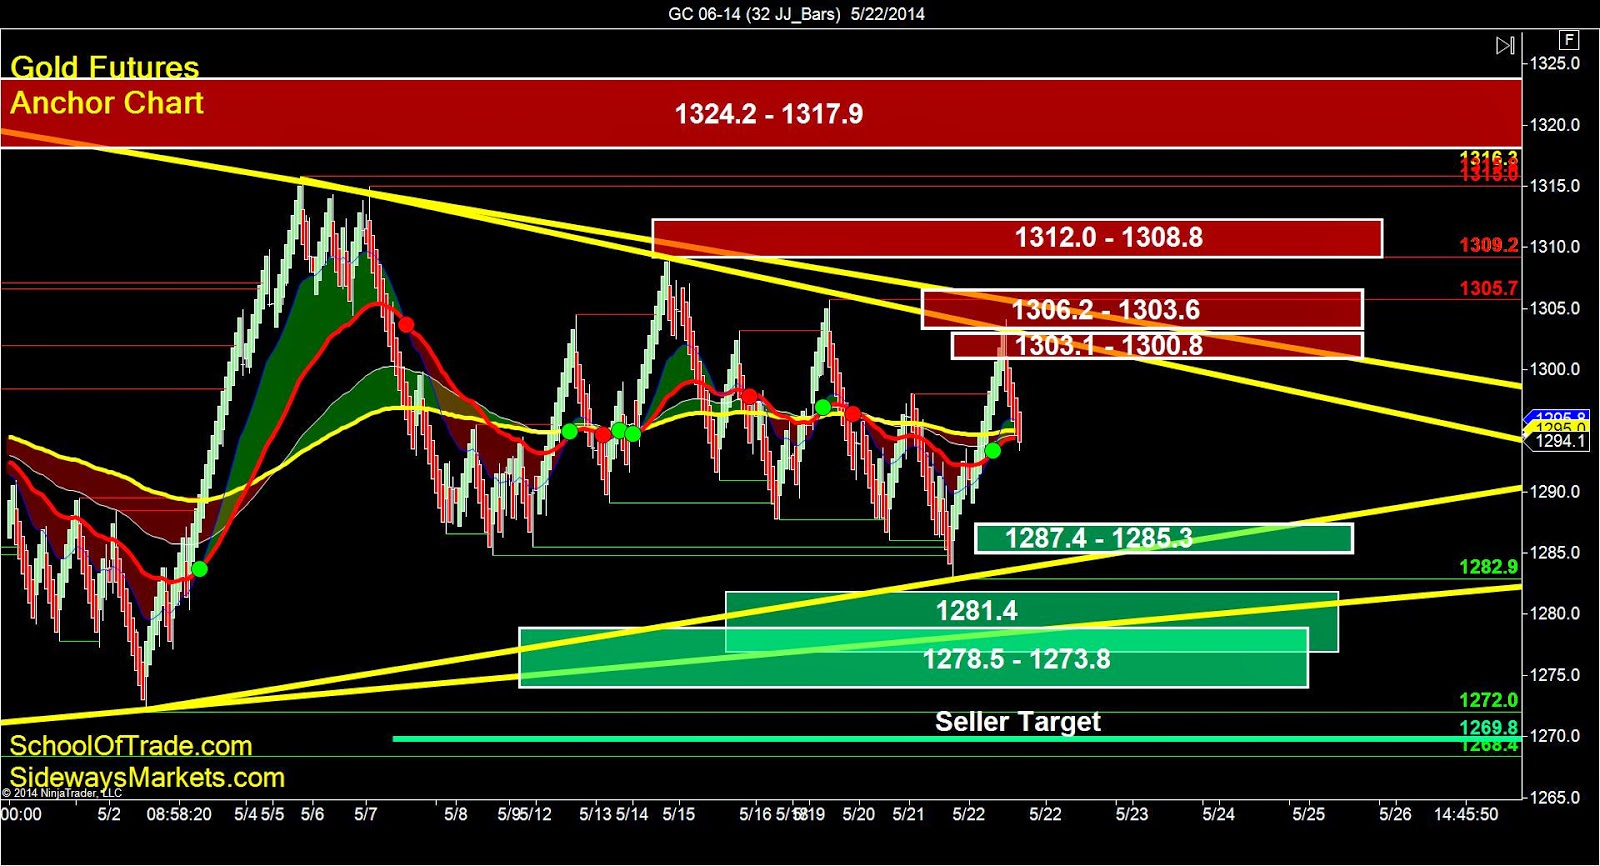 Day Trading Gold Futures